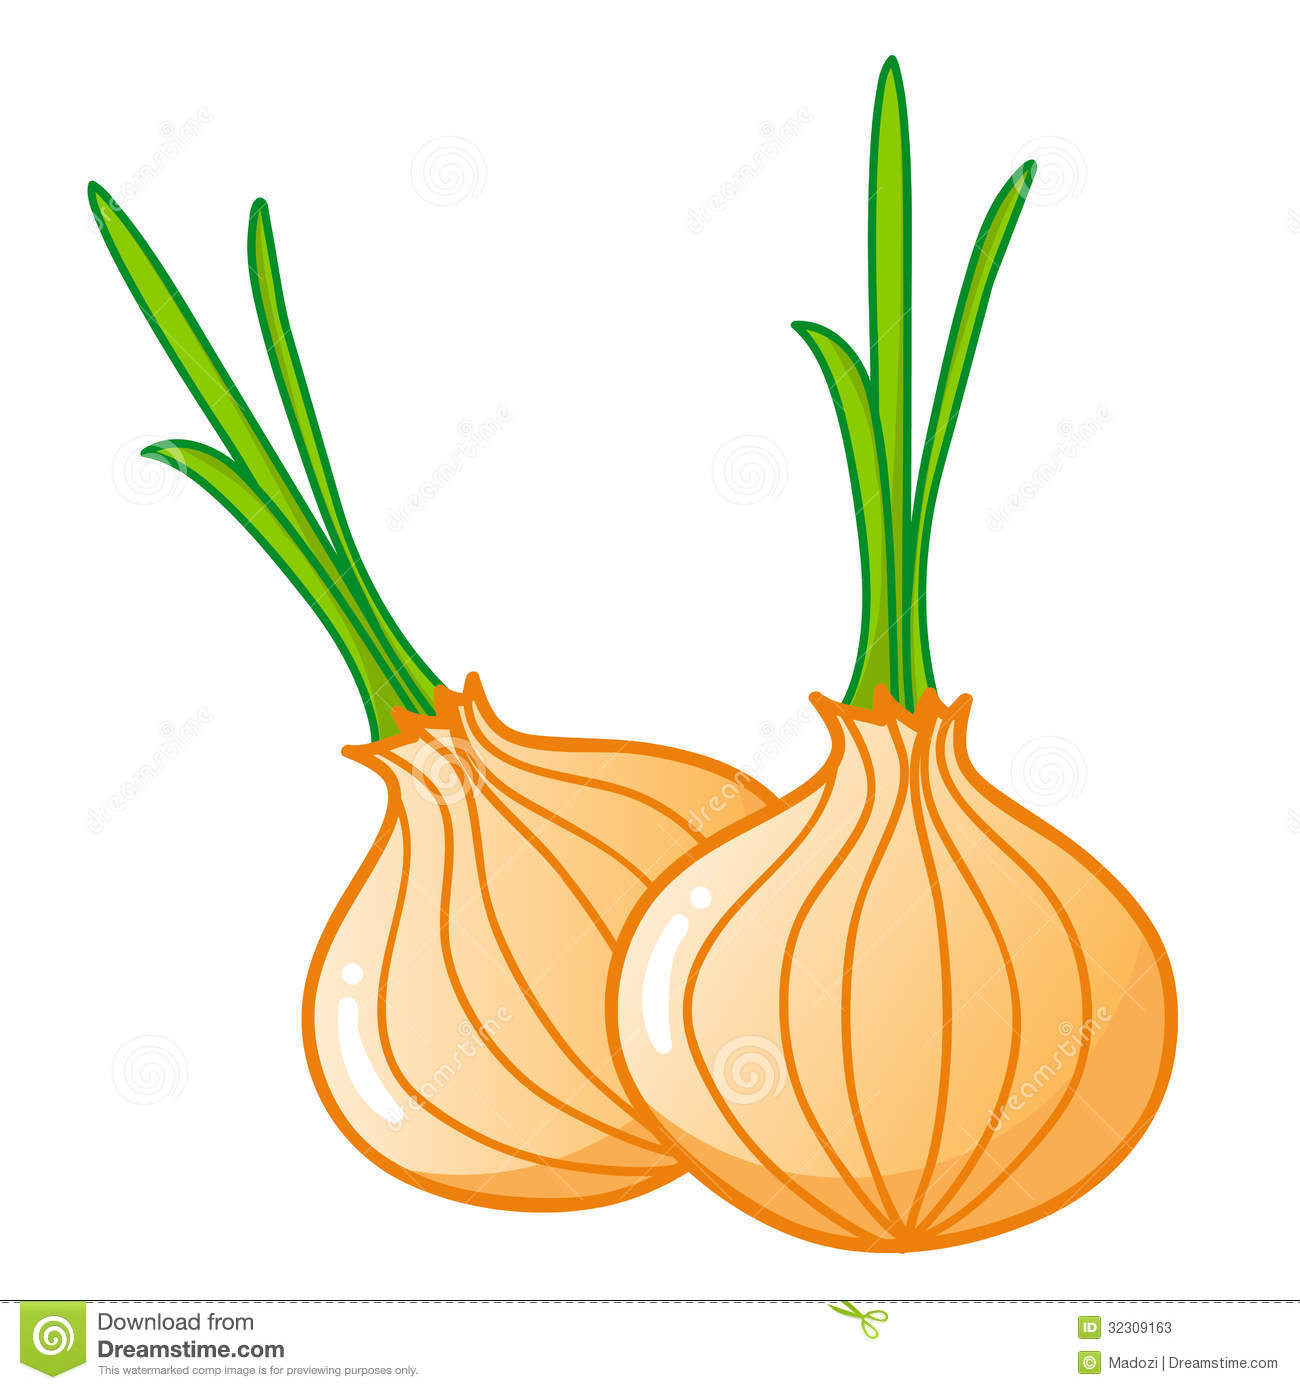 Onion clipart Images Clipart Free Panda Clipart